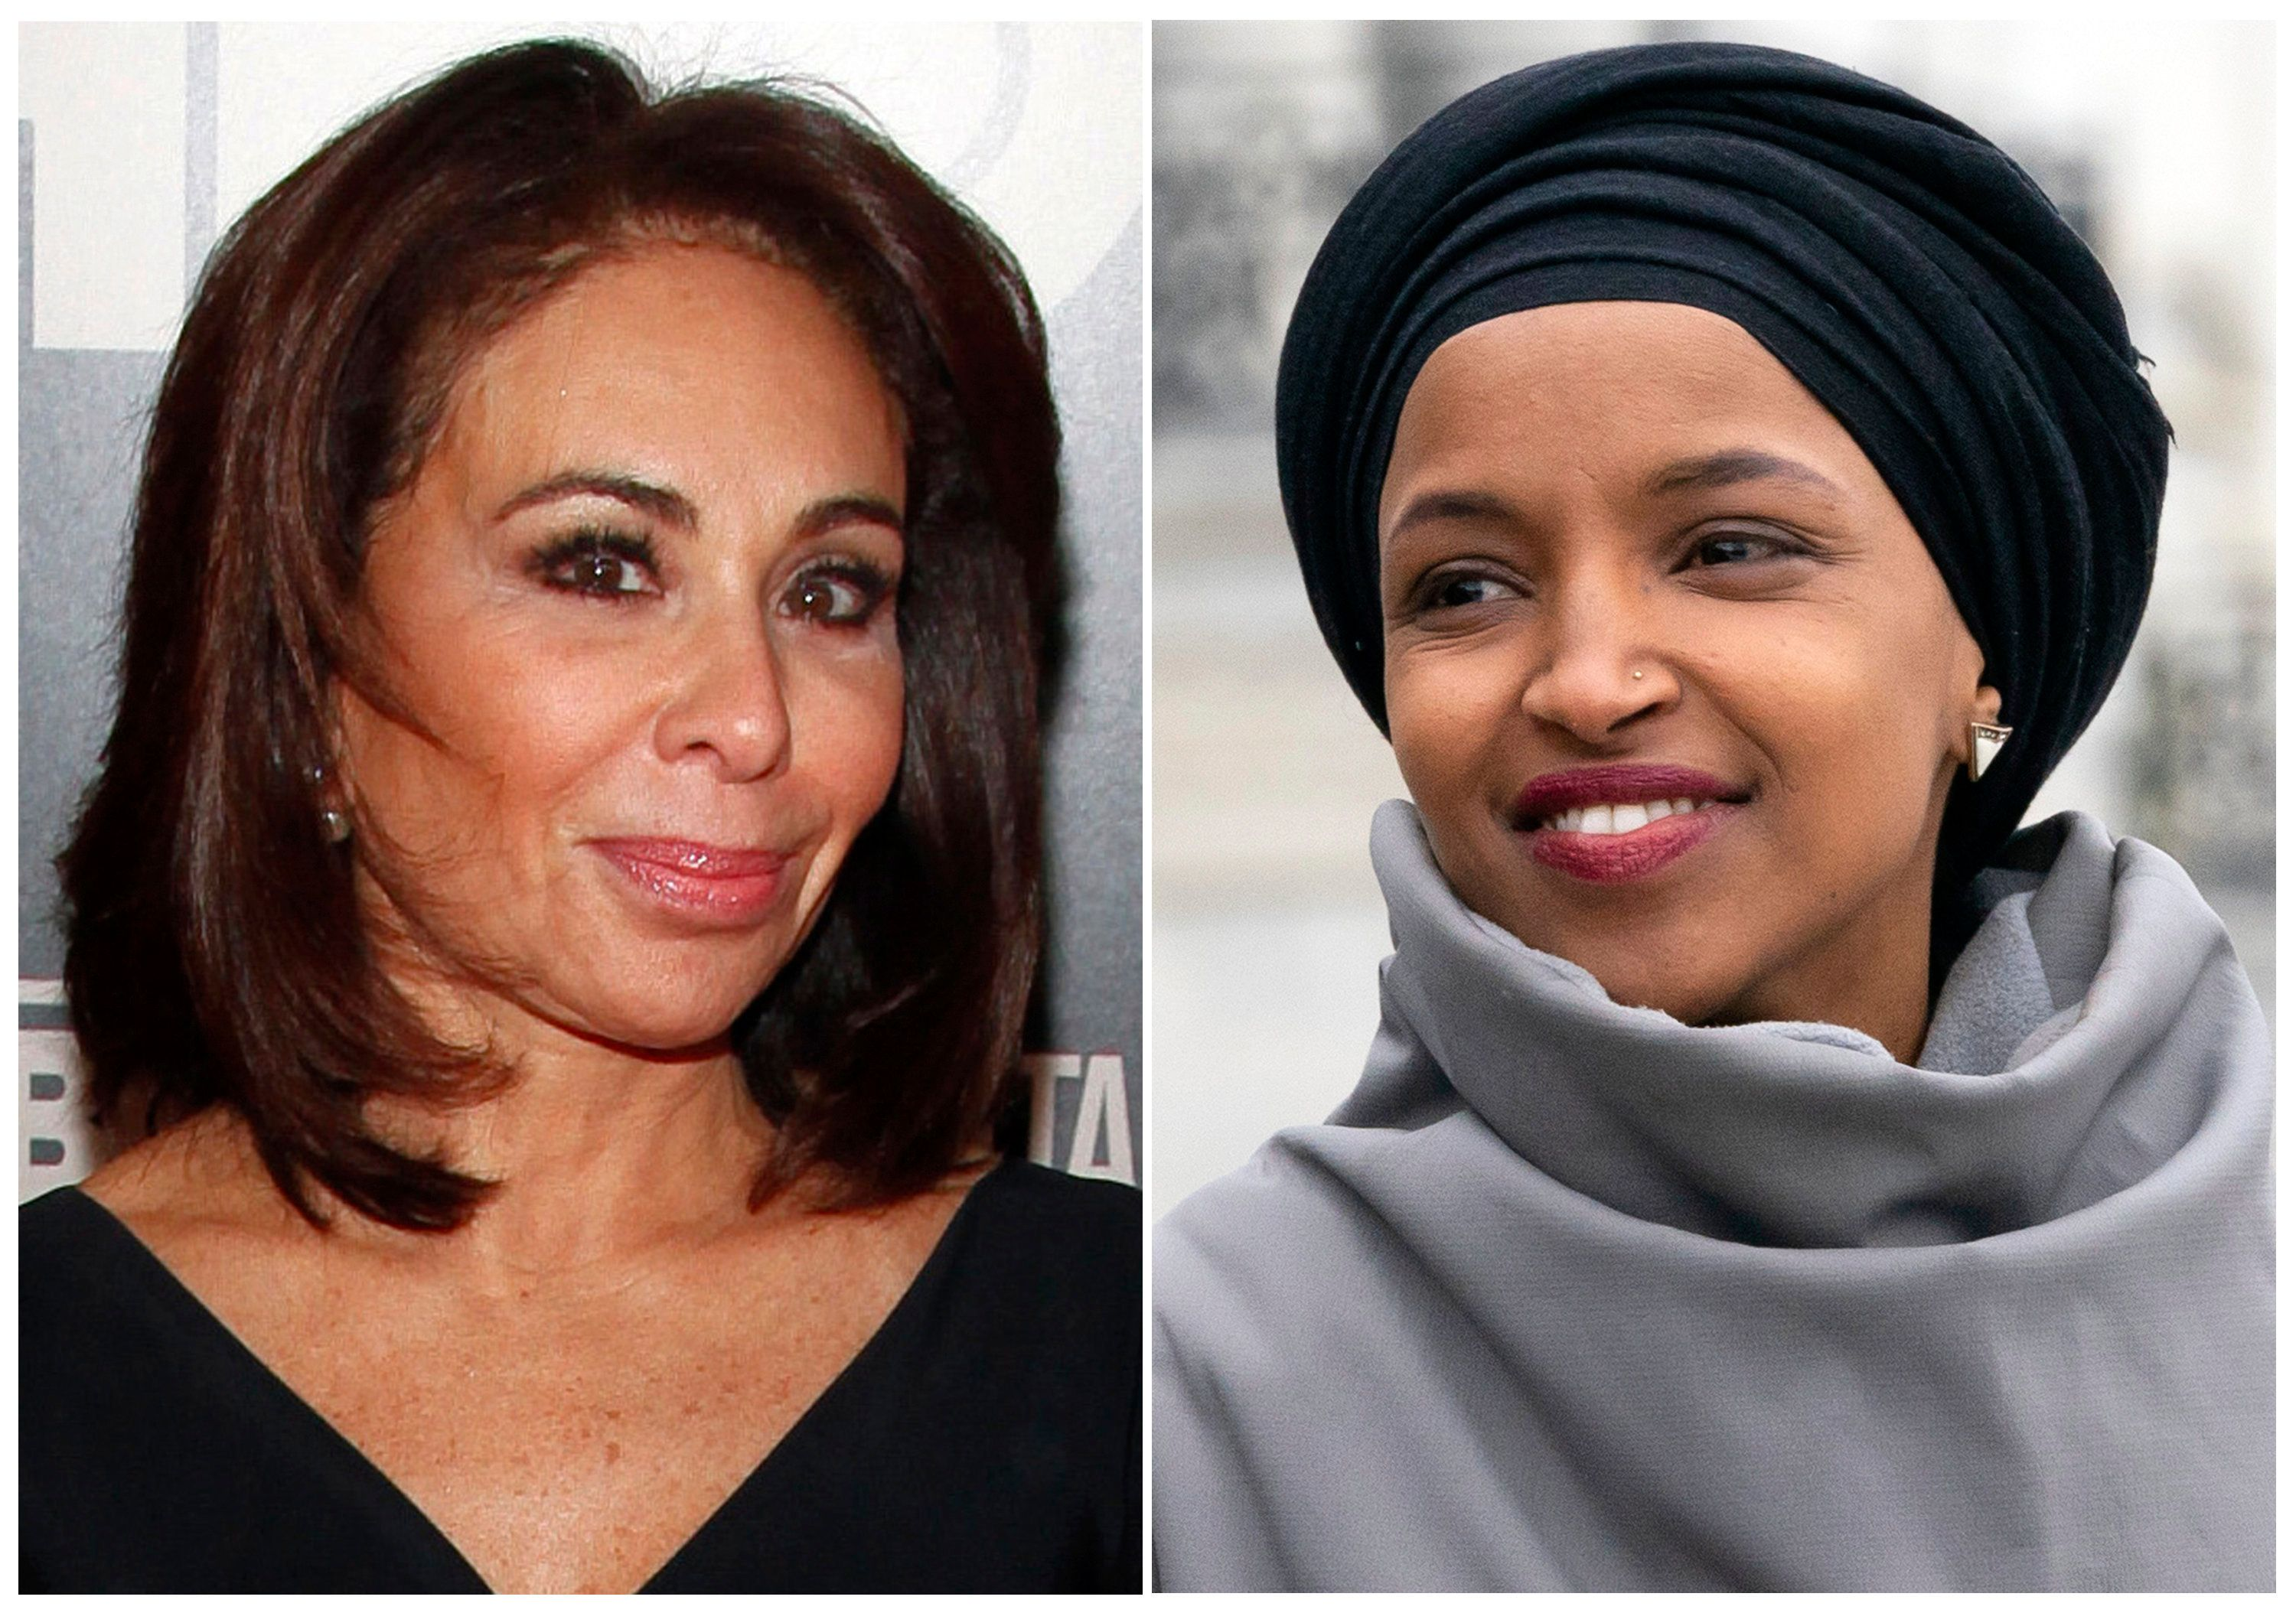 """This combination photo shows Fox News host Jeanine Pirro at the HBO Documentary Series premiere of """"THE JINX: The Life and Deaths of Robert Durst"""" in New York on Jan. 28, 2015, left, and Rep. Ilhan Omar, D-Minn., at a rally outside the Capitol in Washington on March 8, 2019. Omar thanked Fox News on Monday, March 11, for condemning comments made on the network by Pirro centering on the freshman Democrat's wearing of a traditional Muslim head covering. Pirro questioned whether Omar's wearing a hijab indicated her adherence to Sharia law. (AP Photo)"""